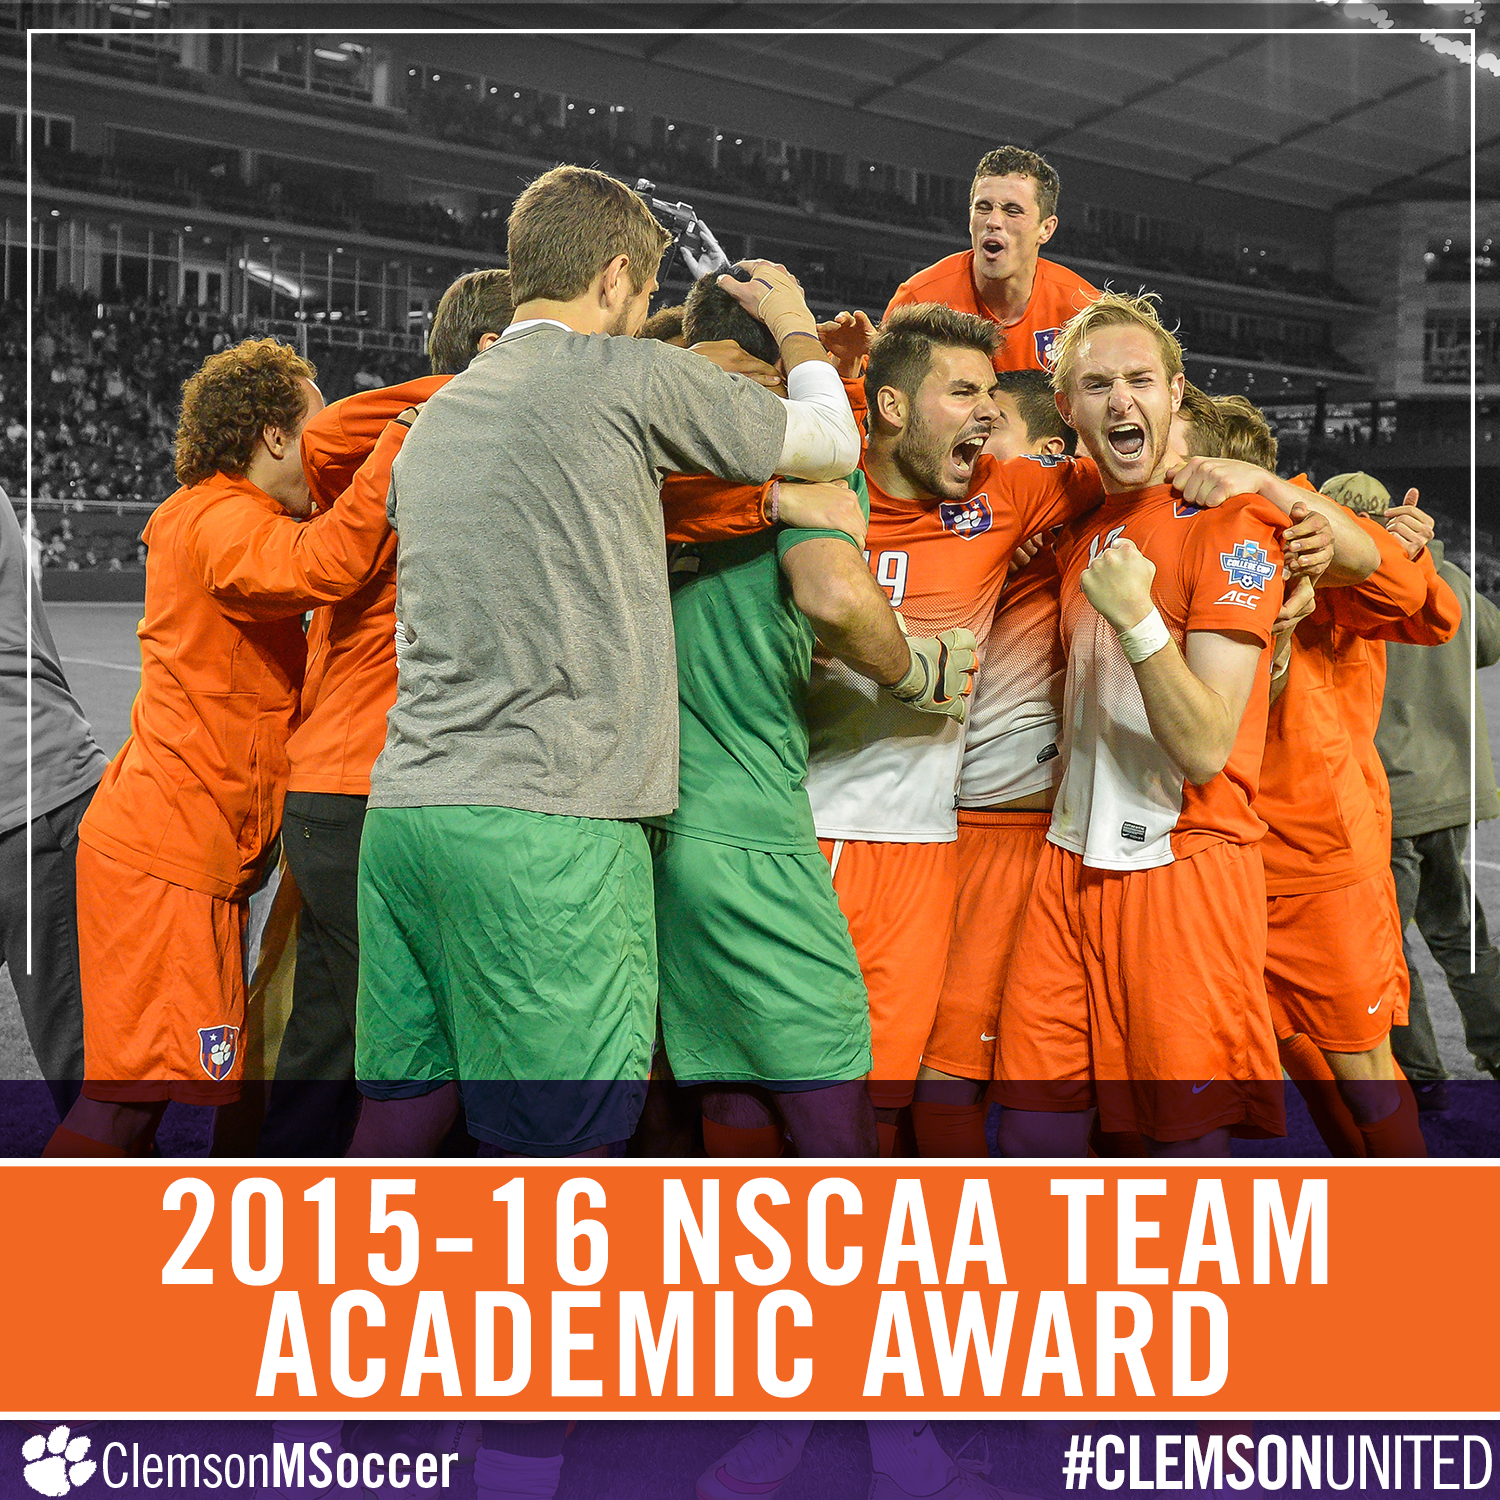 Clemson Men?s Soccer Team Earns NSCAA Team Academic Award